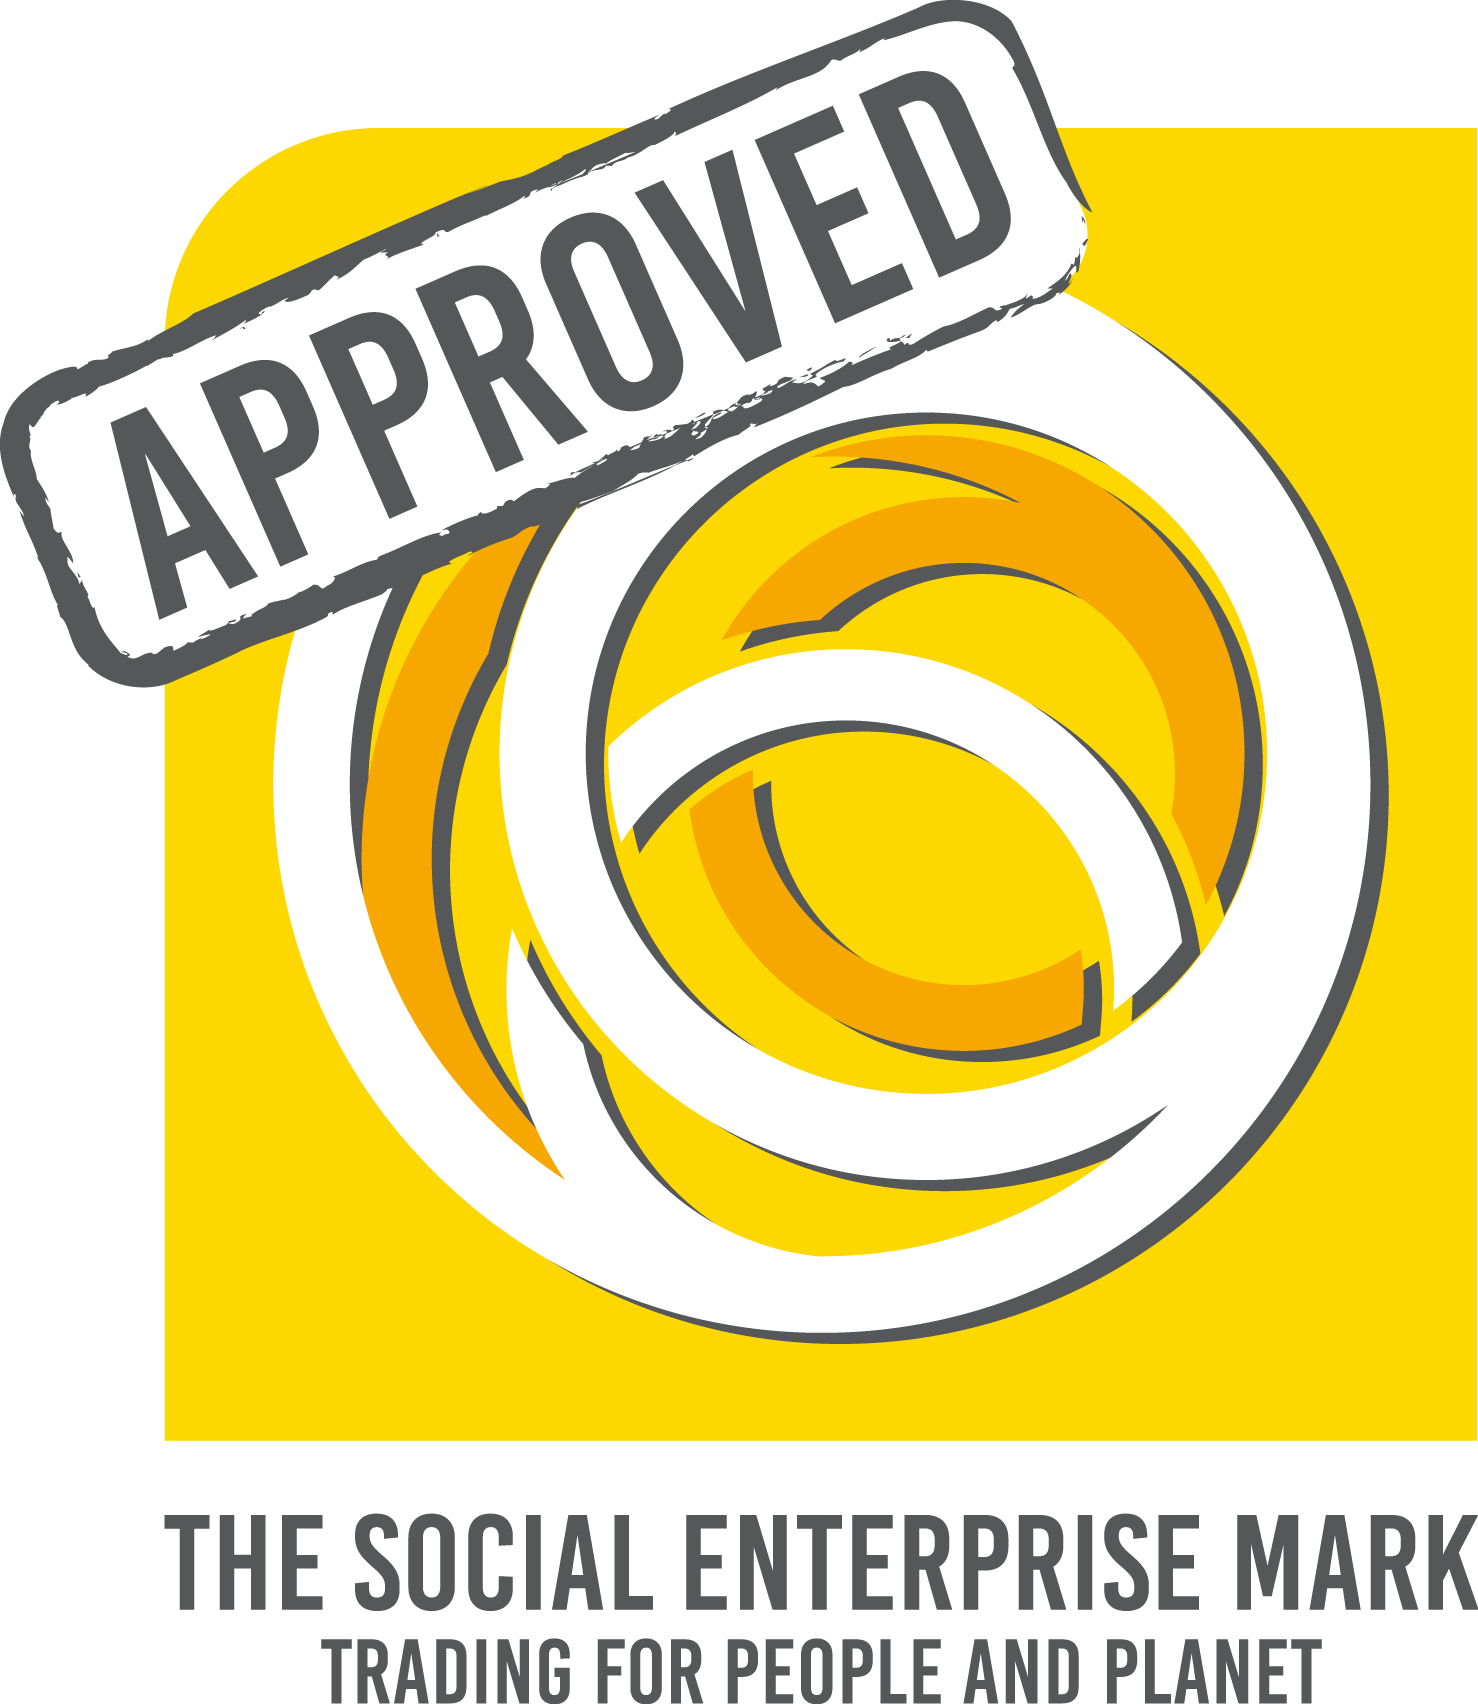 Image showing our Social Enterprise Mark